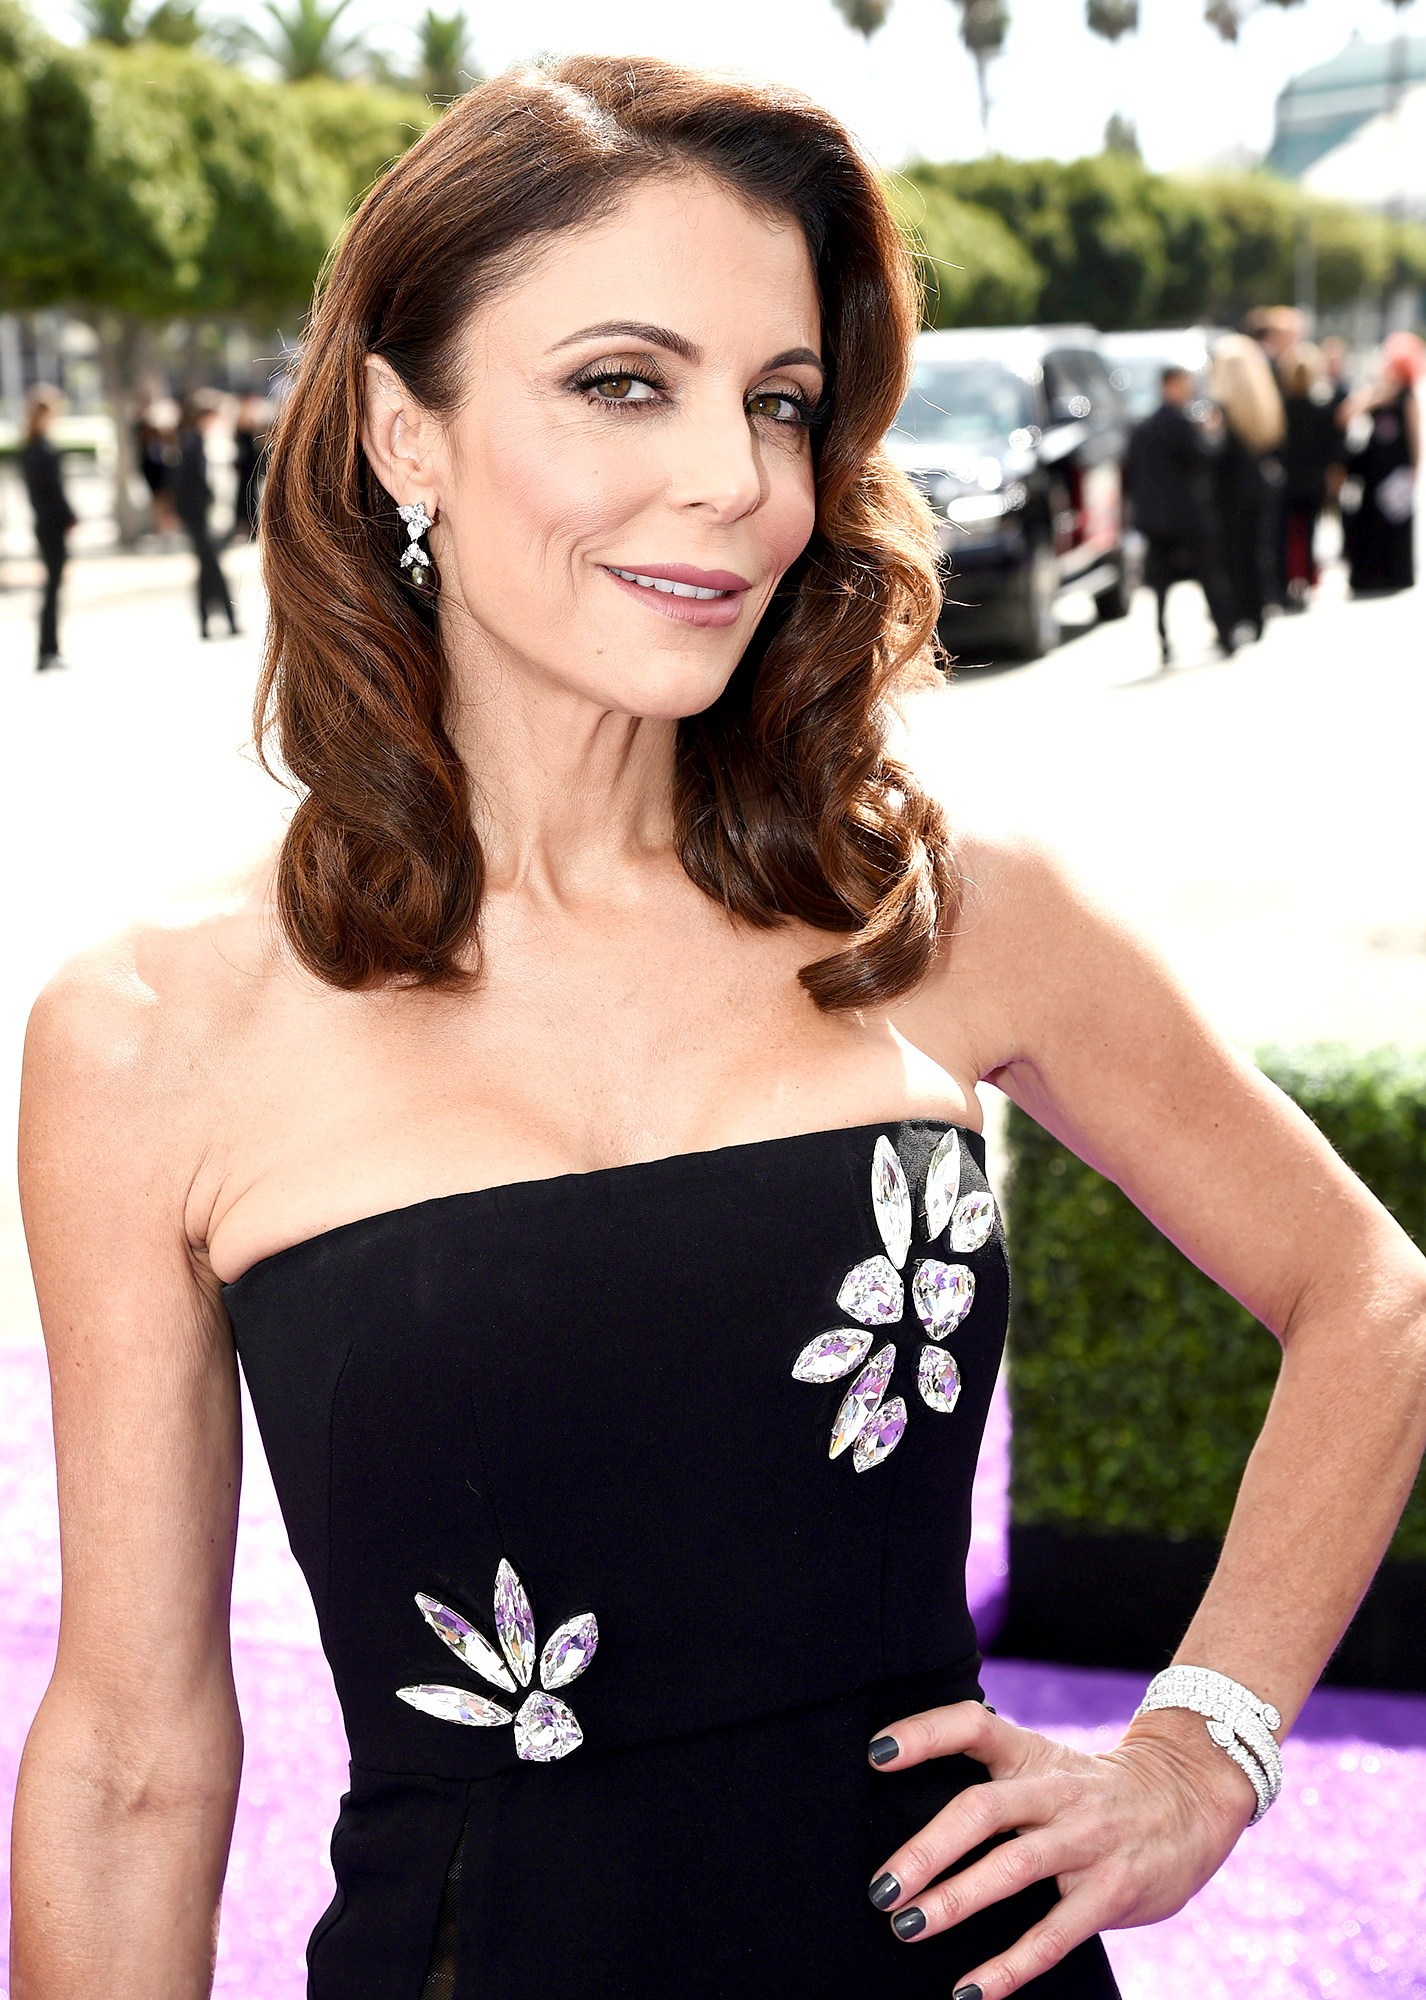 Bethenny Frankel You Can't Be Thin Successful and Having Sex